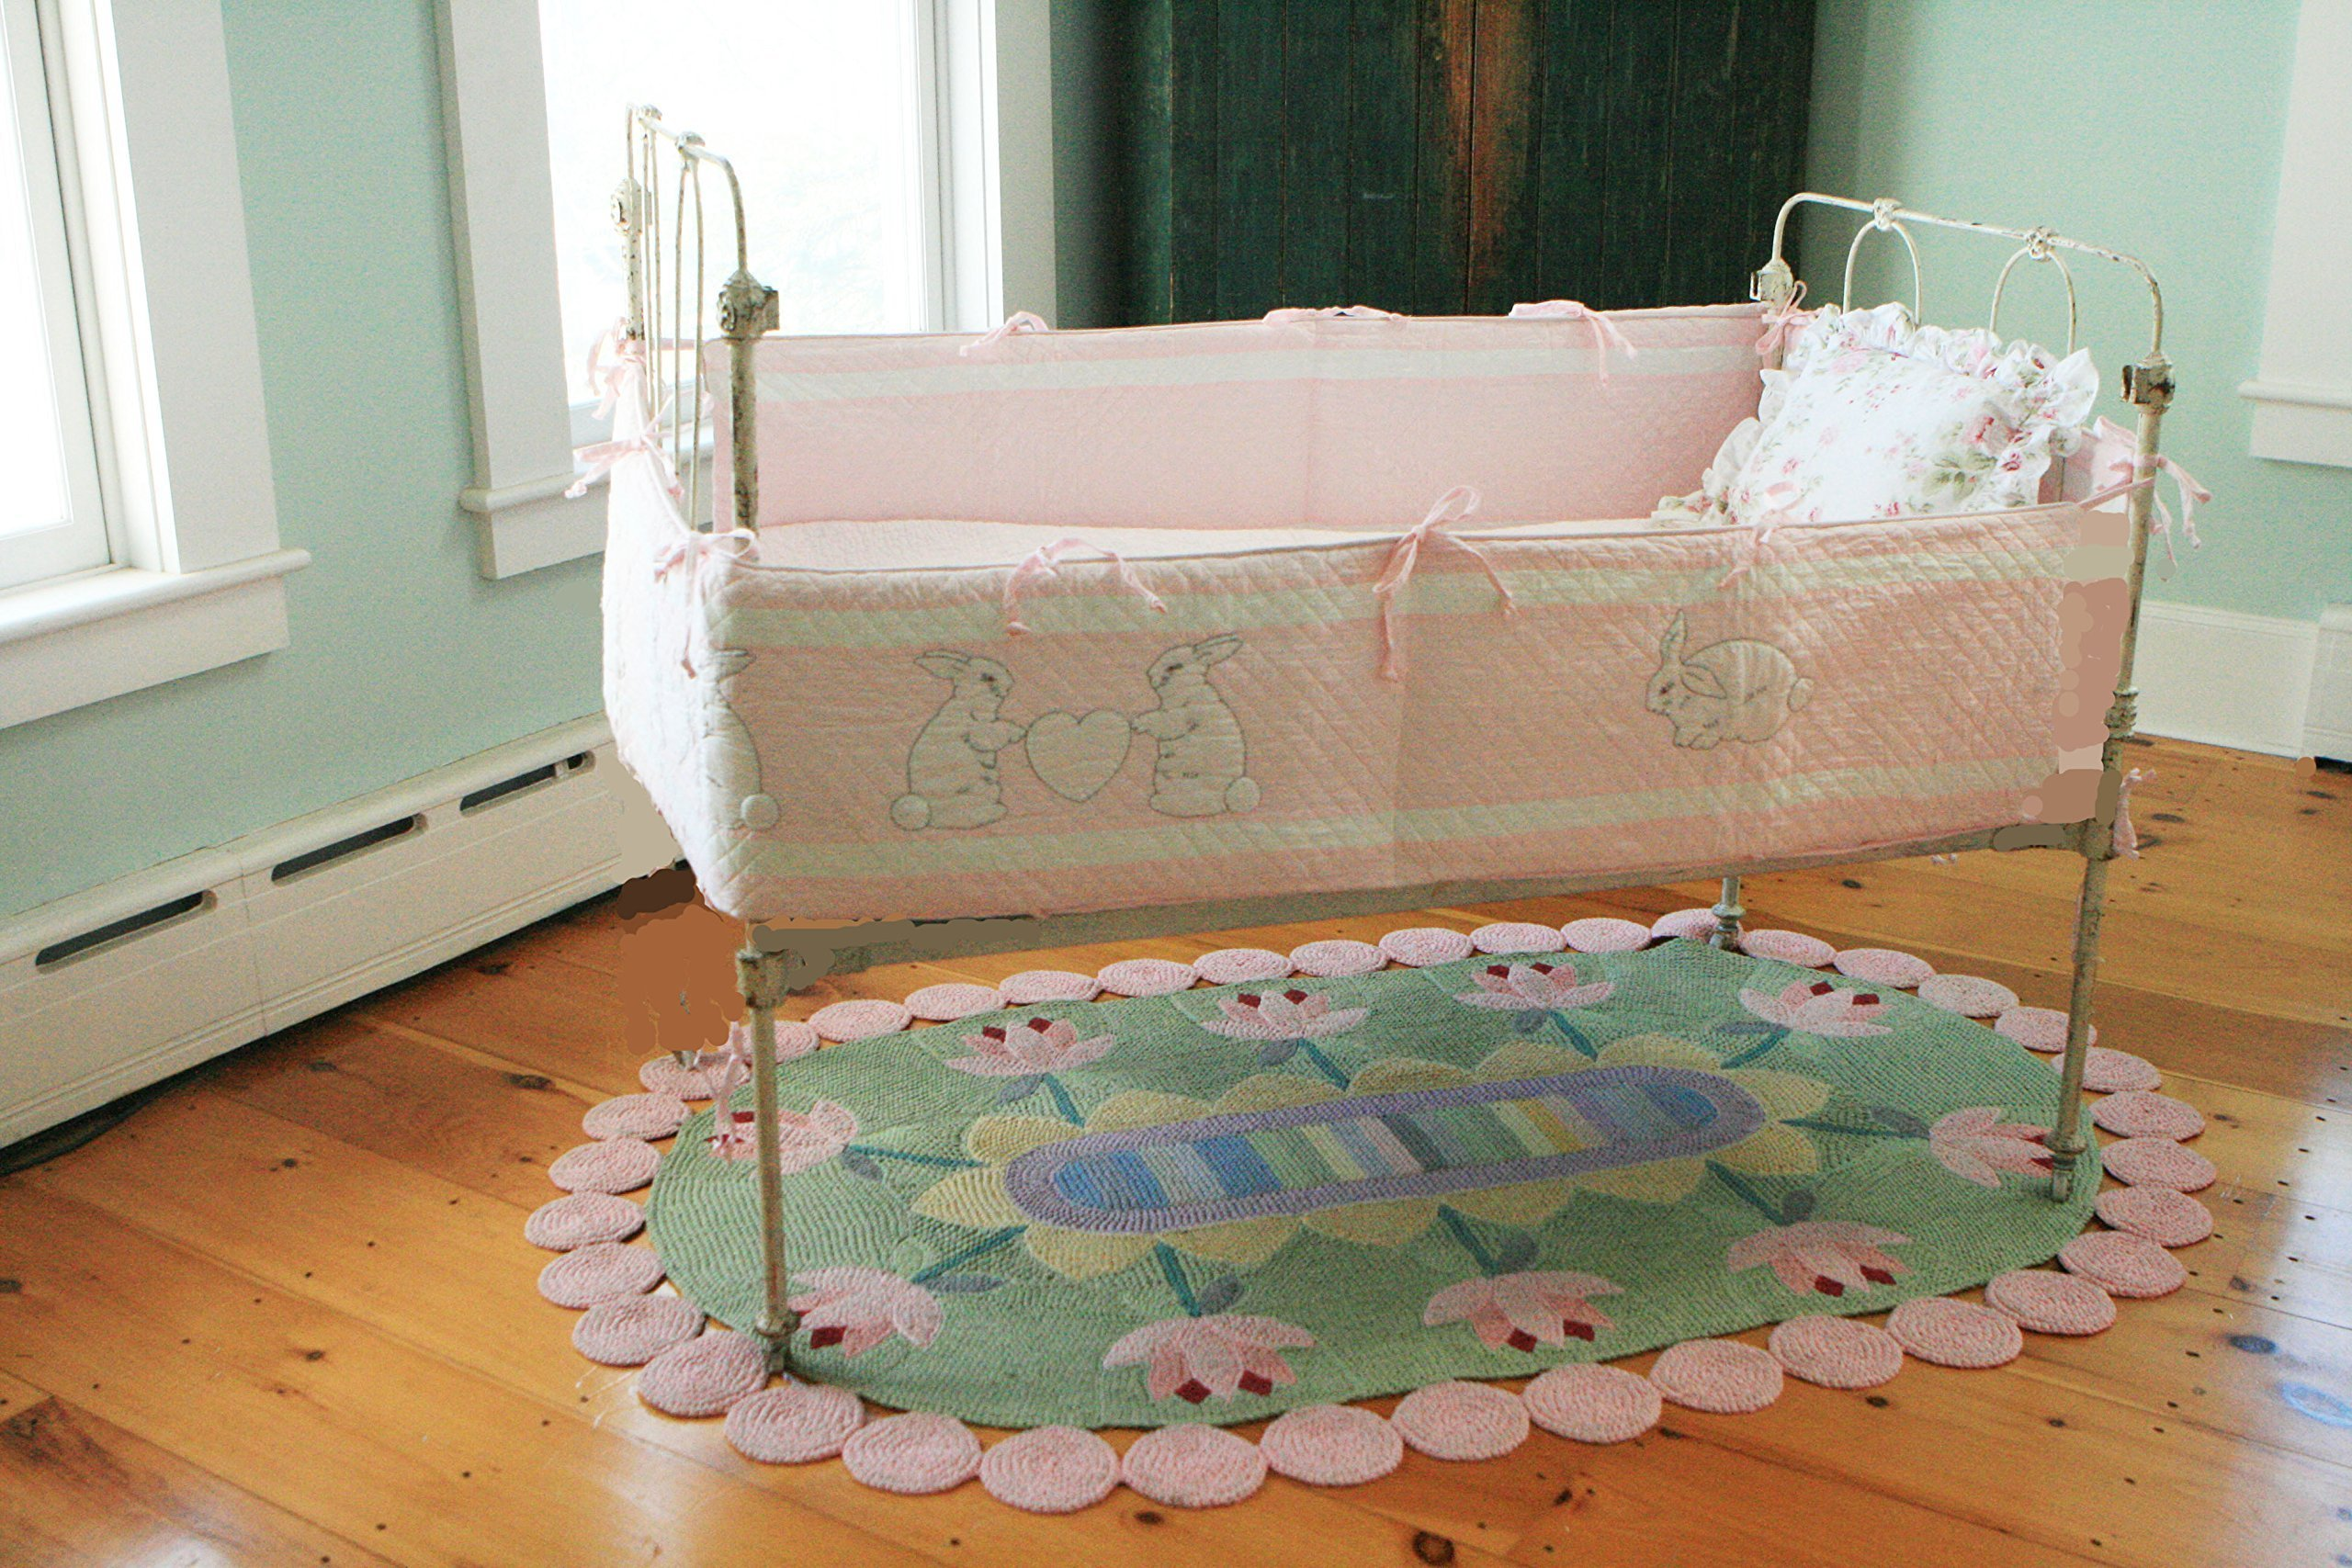 Designed by Judi Boisson. ''Bunny-Baby'' Bumper Pink Cotton Handmade -Appliqued and Embroidered Reversible Cotton.